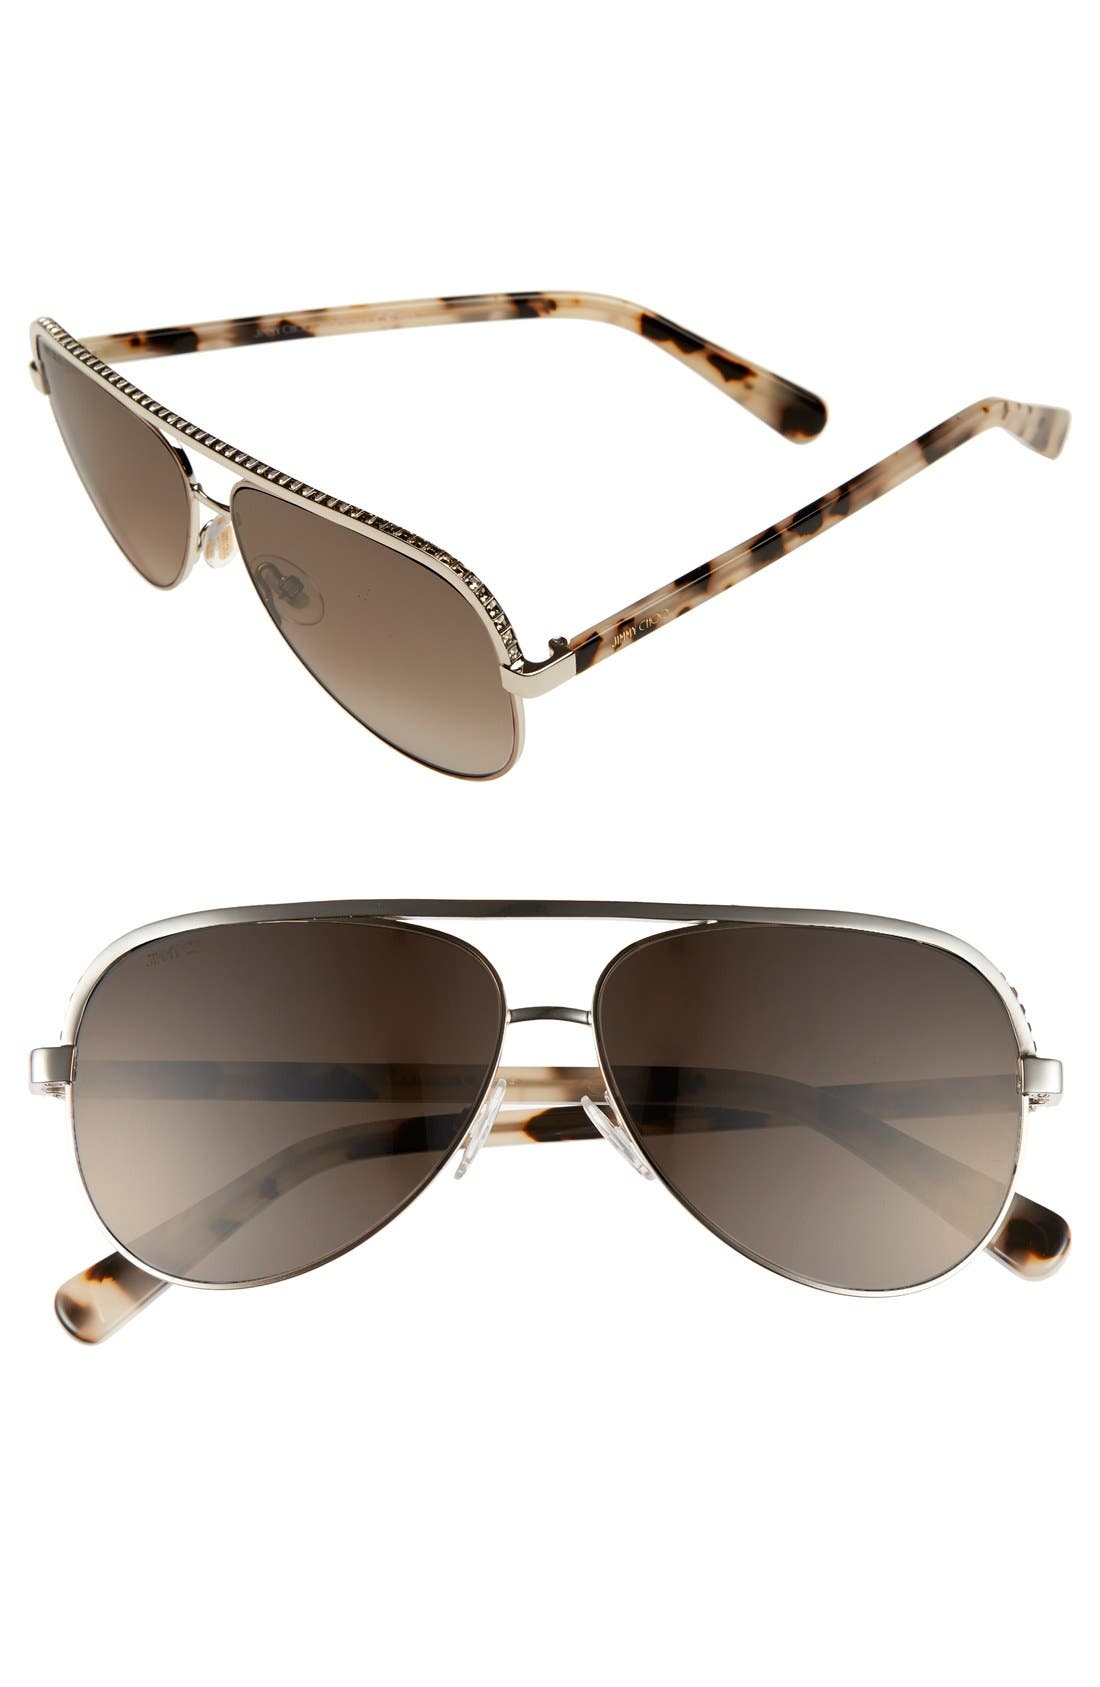 Main Image - Jimmy Choo 'Linas' 59mm Aviator Sunglasses